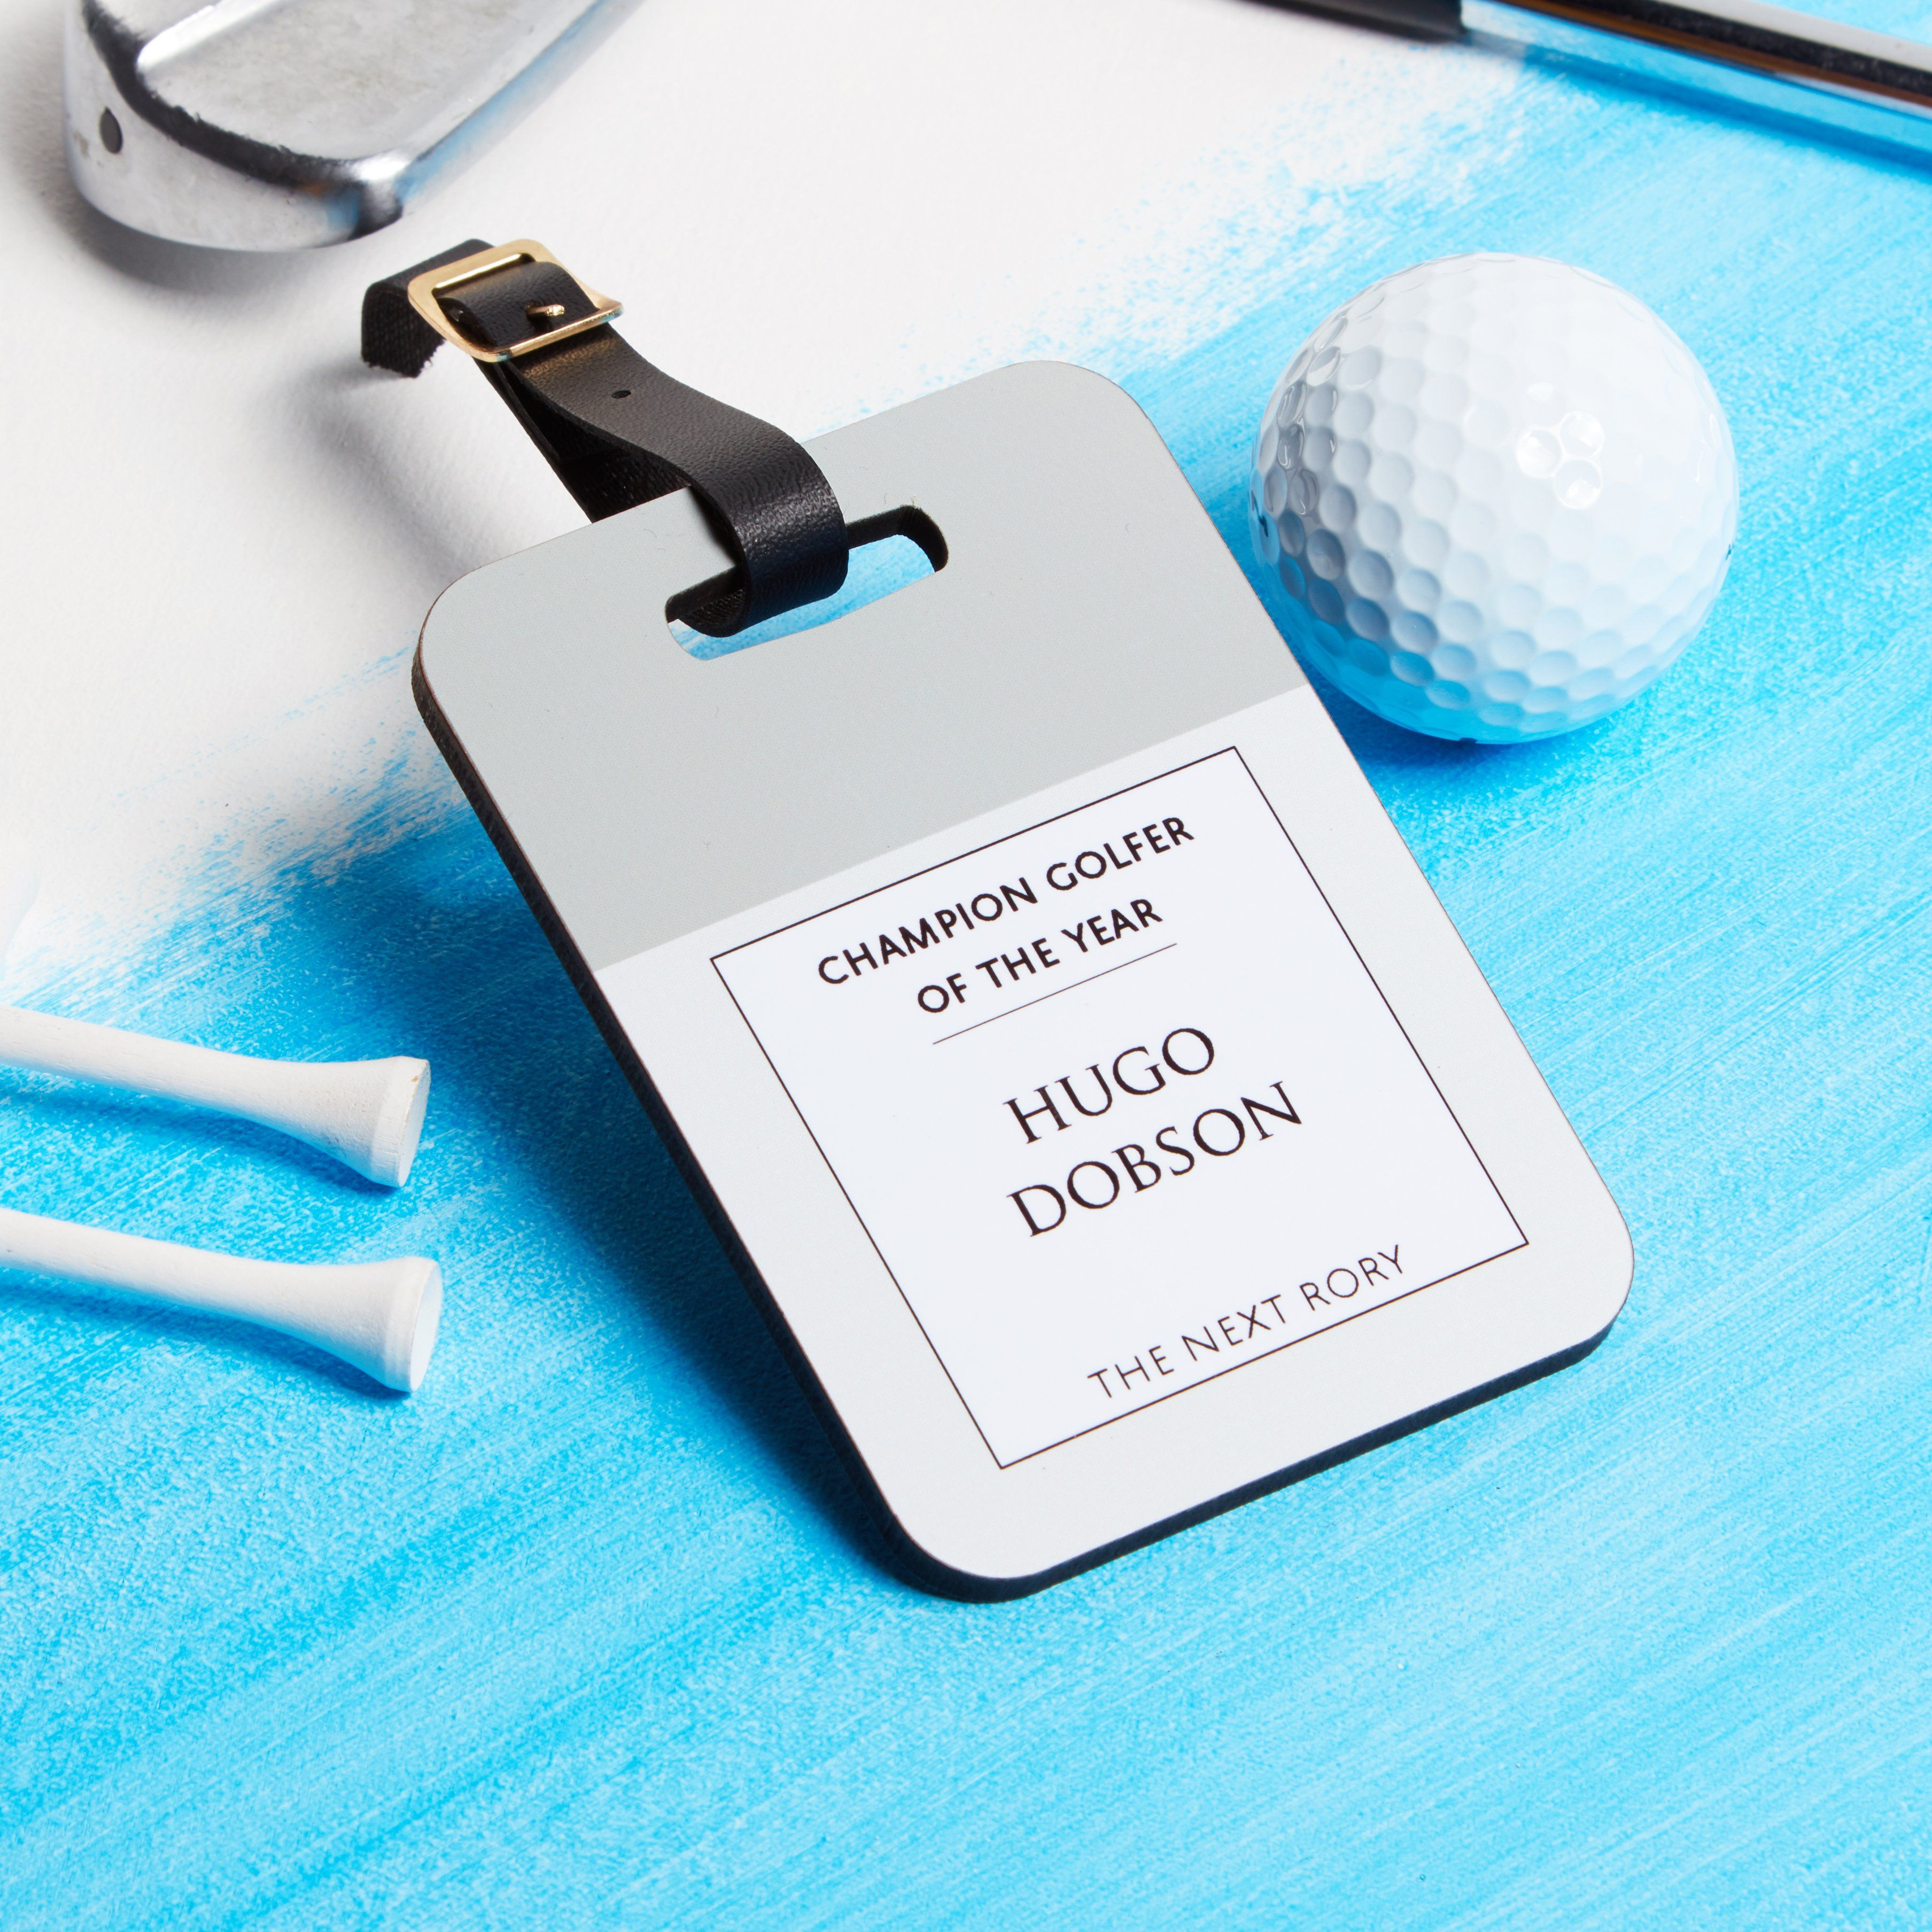 Personalised Golf Bag Tag from coconutgrass #GolfBags | Golf Bags ...